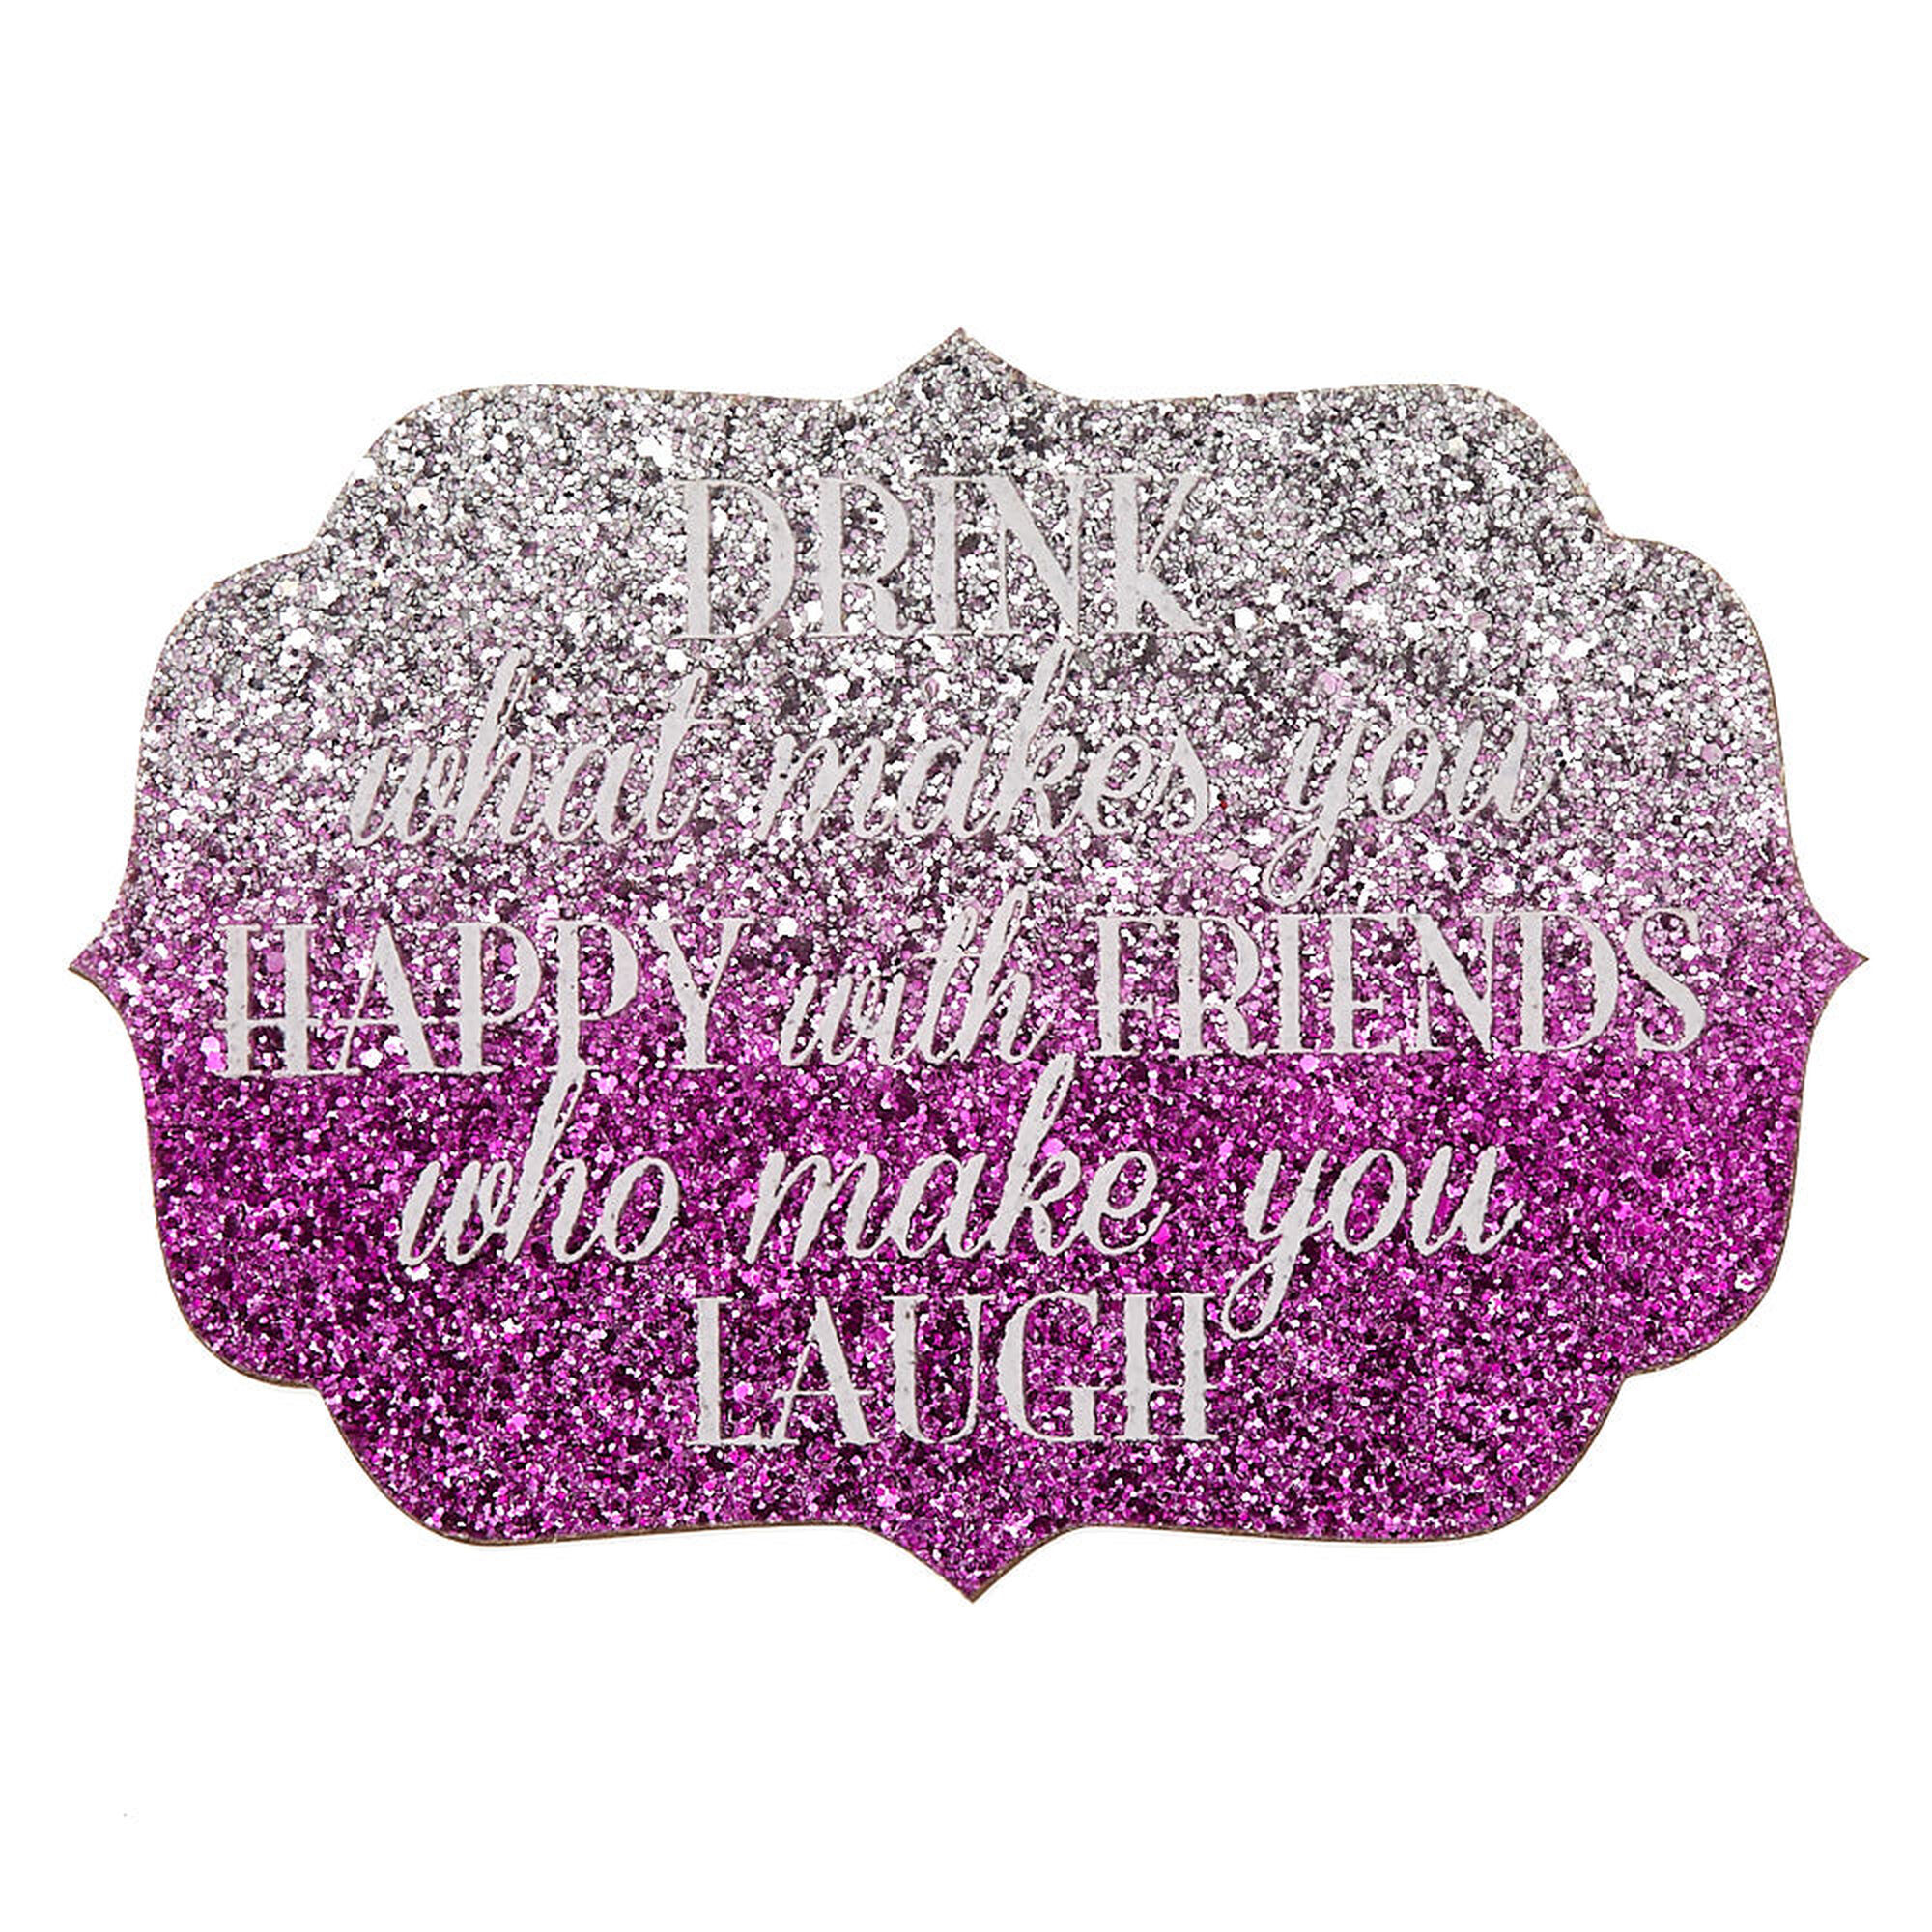 Ombre Glitter Drink With Friends Wooden Wall Art Pink